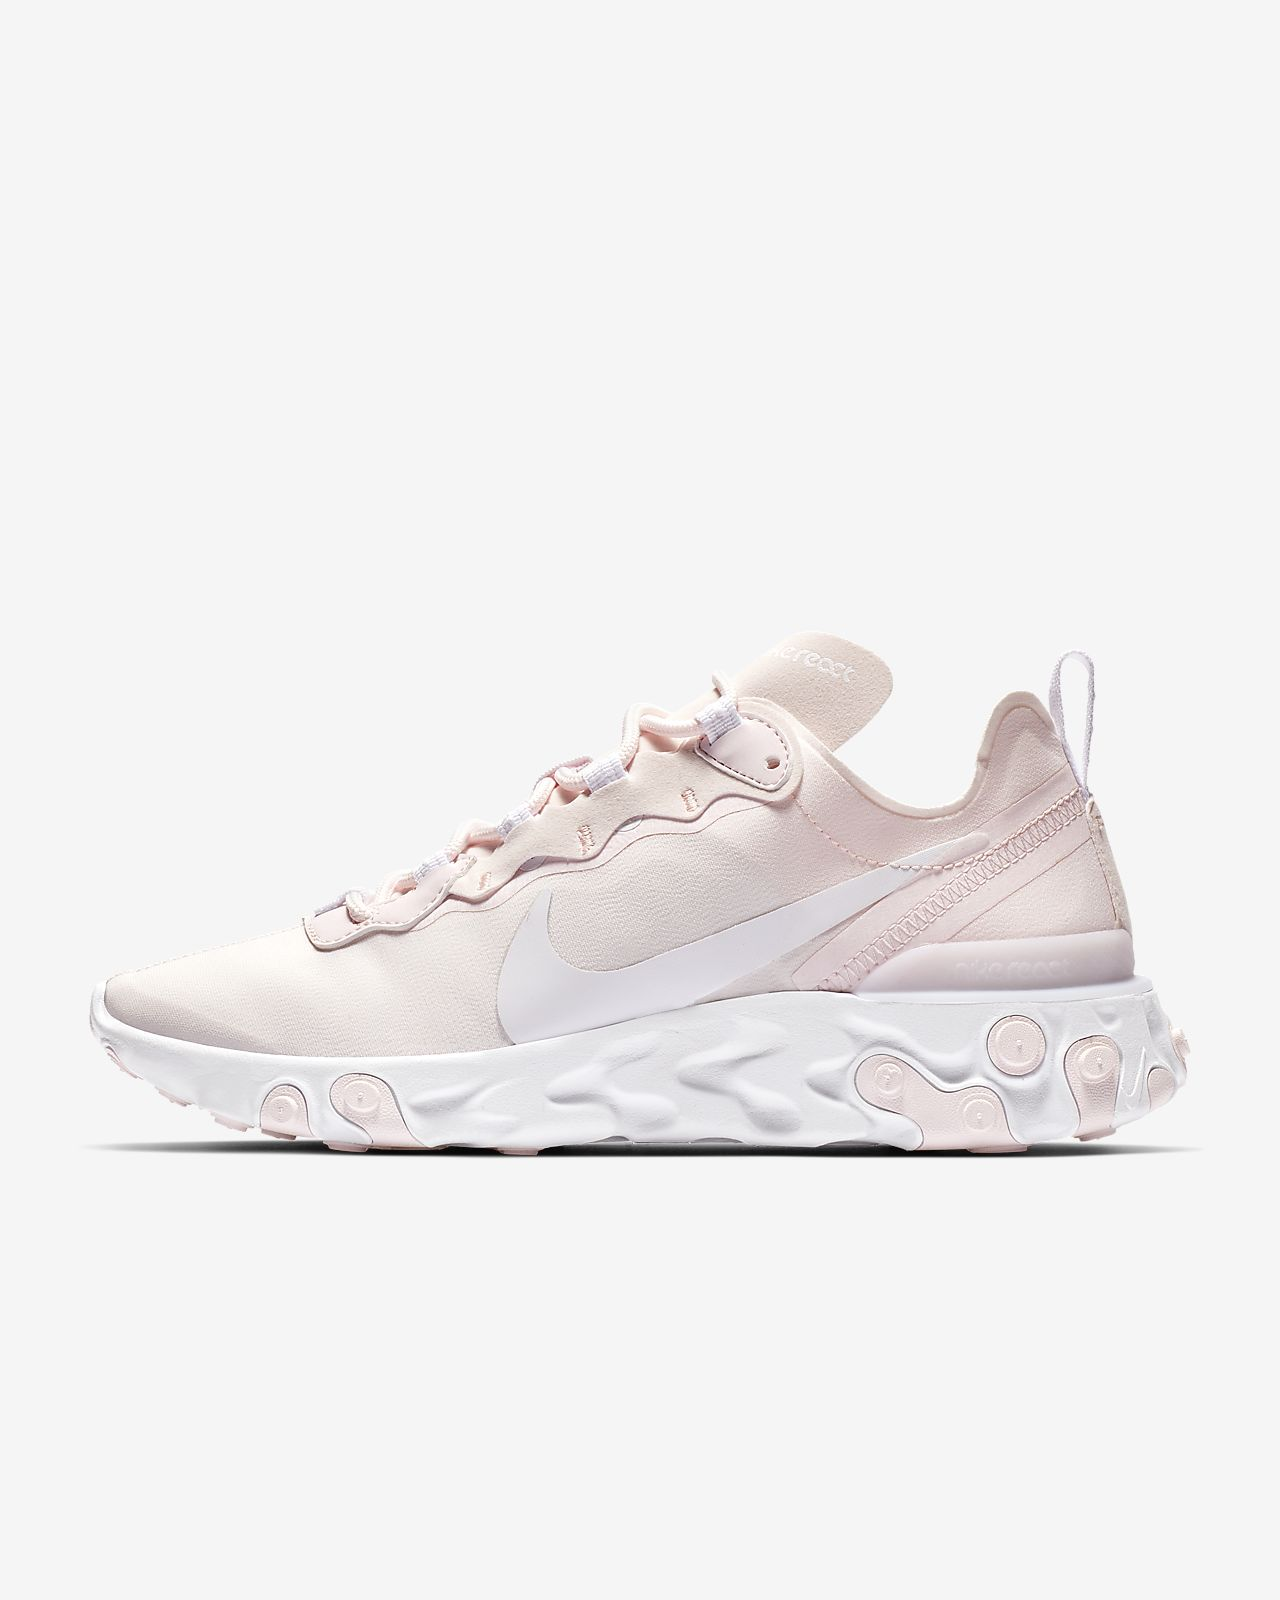 22f109d8b83 Nike React Element 55 Women s Shoe. Nike.com ID